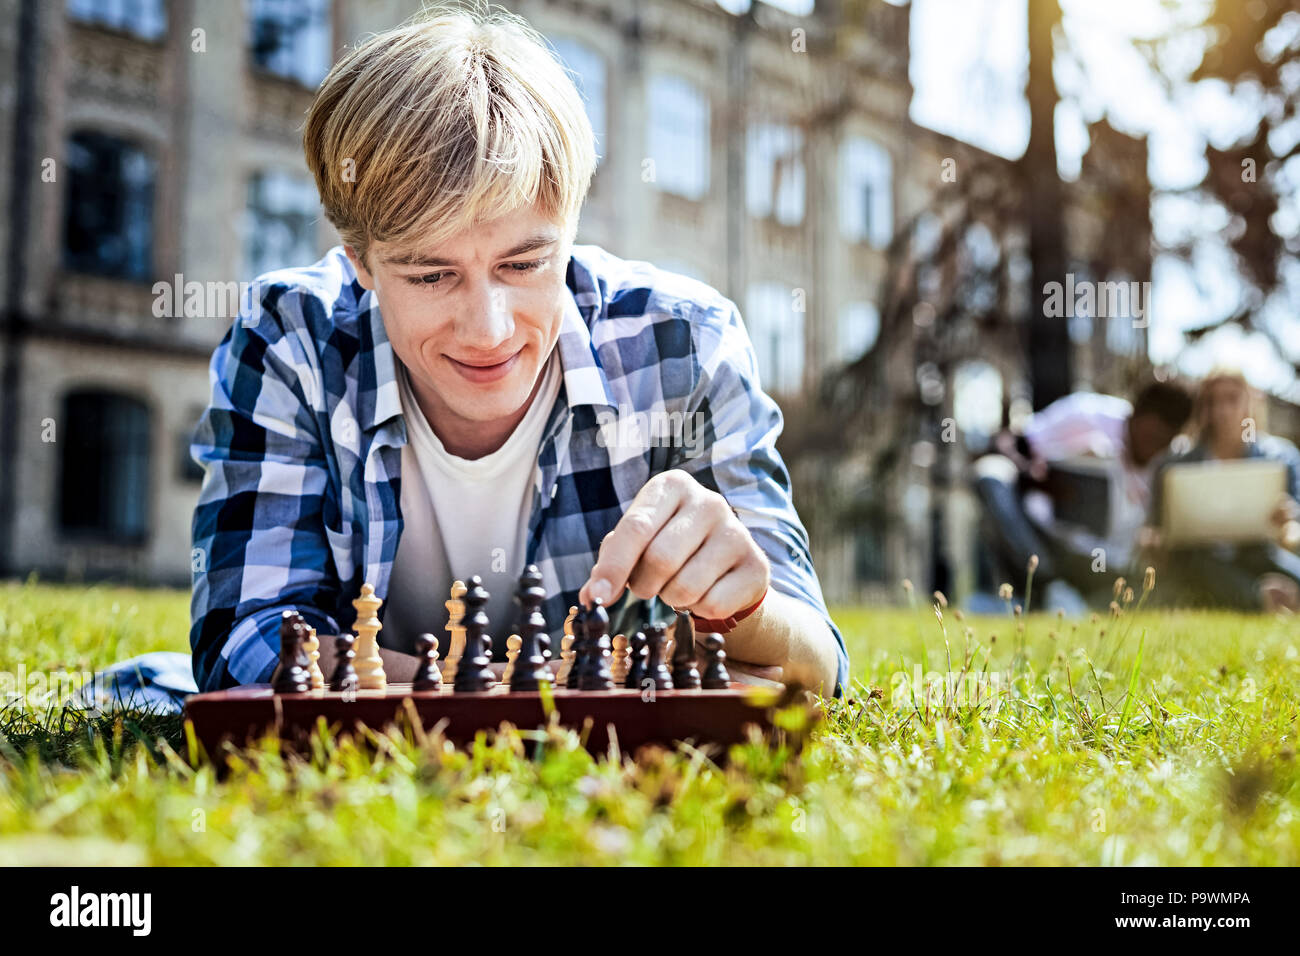 Handsome young man playing chess outdoors - Stock Image